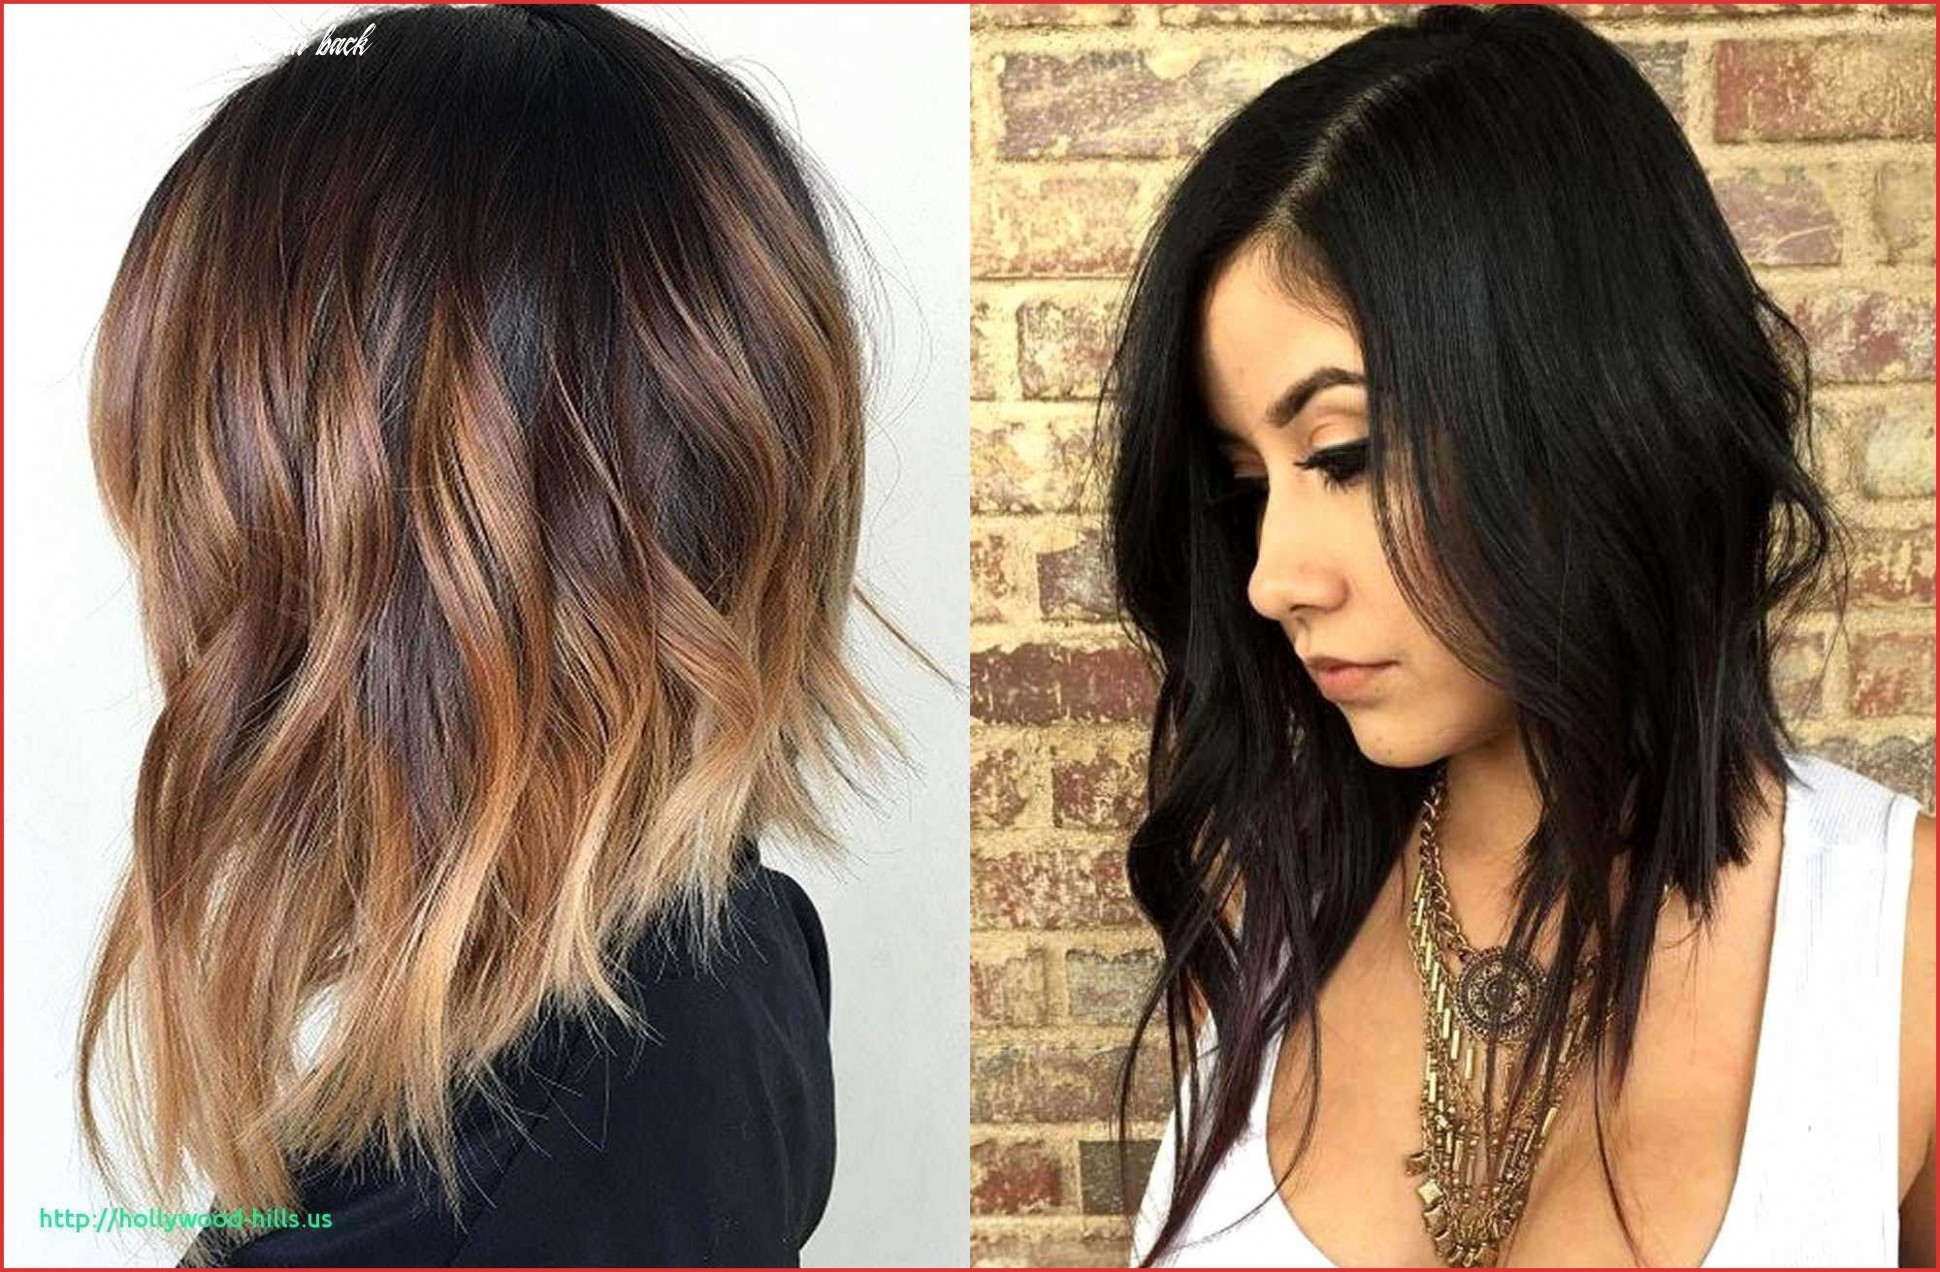 Hairstyles long in front short in back pictures new hairstyles